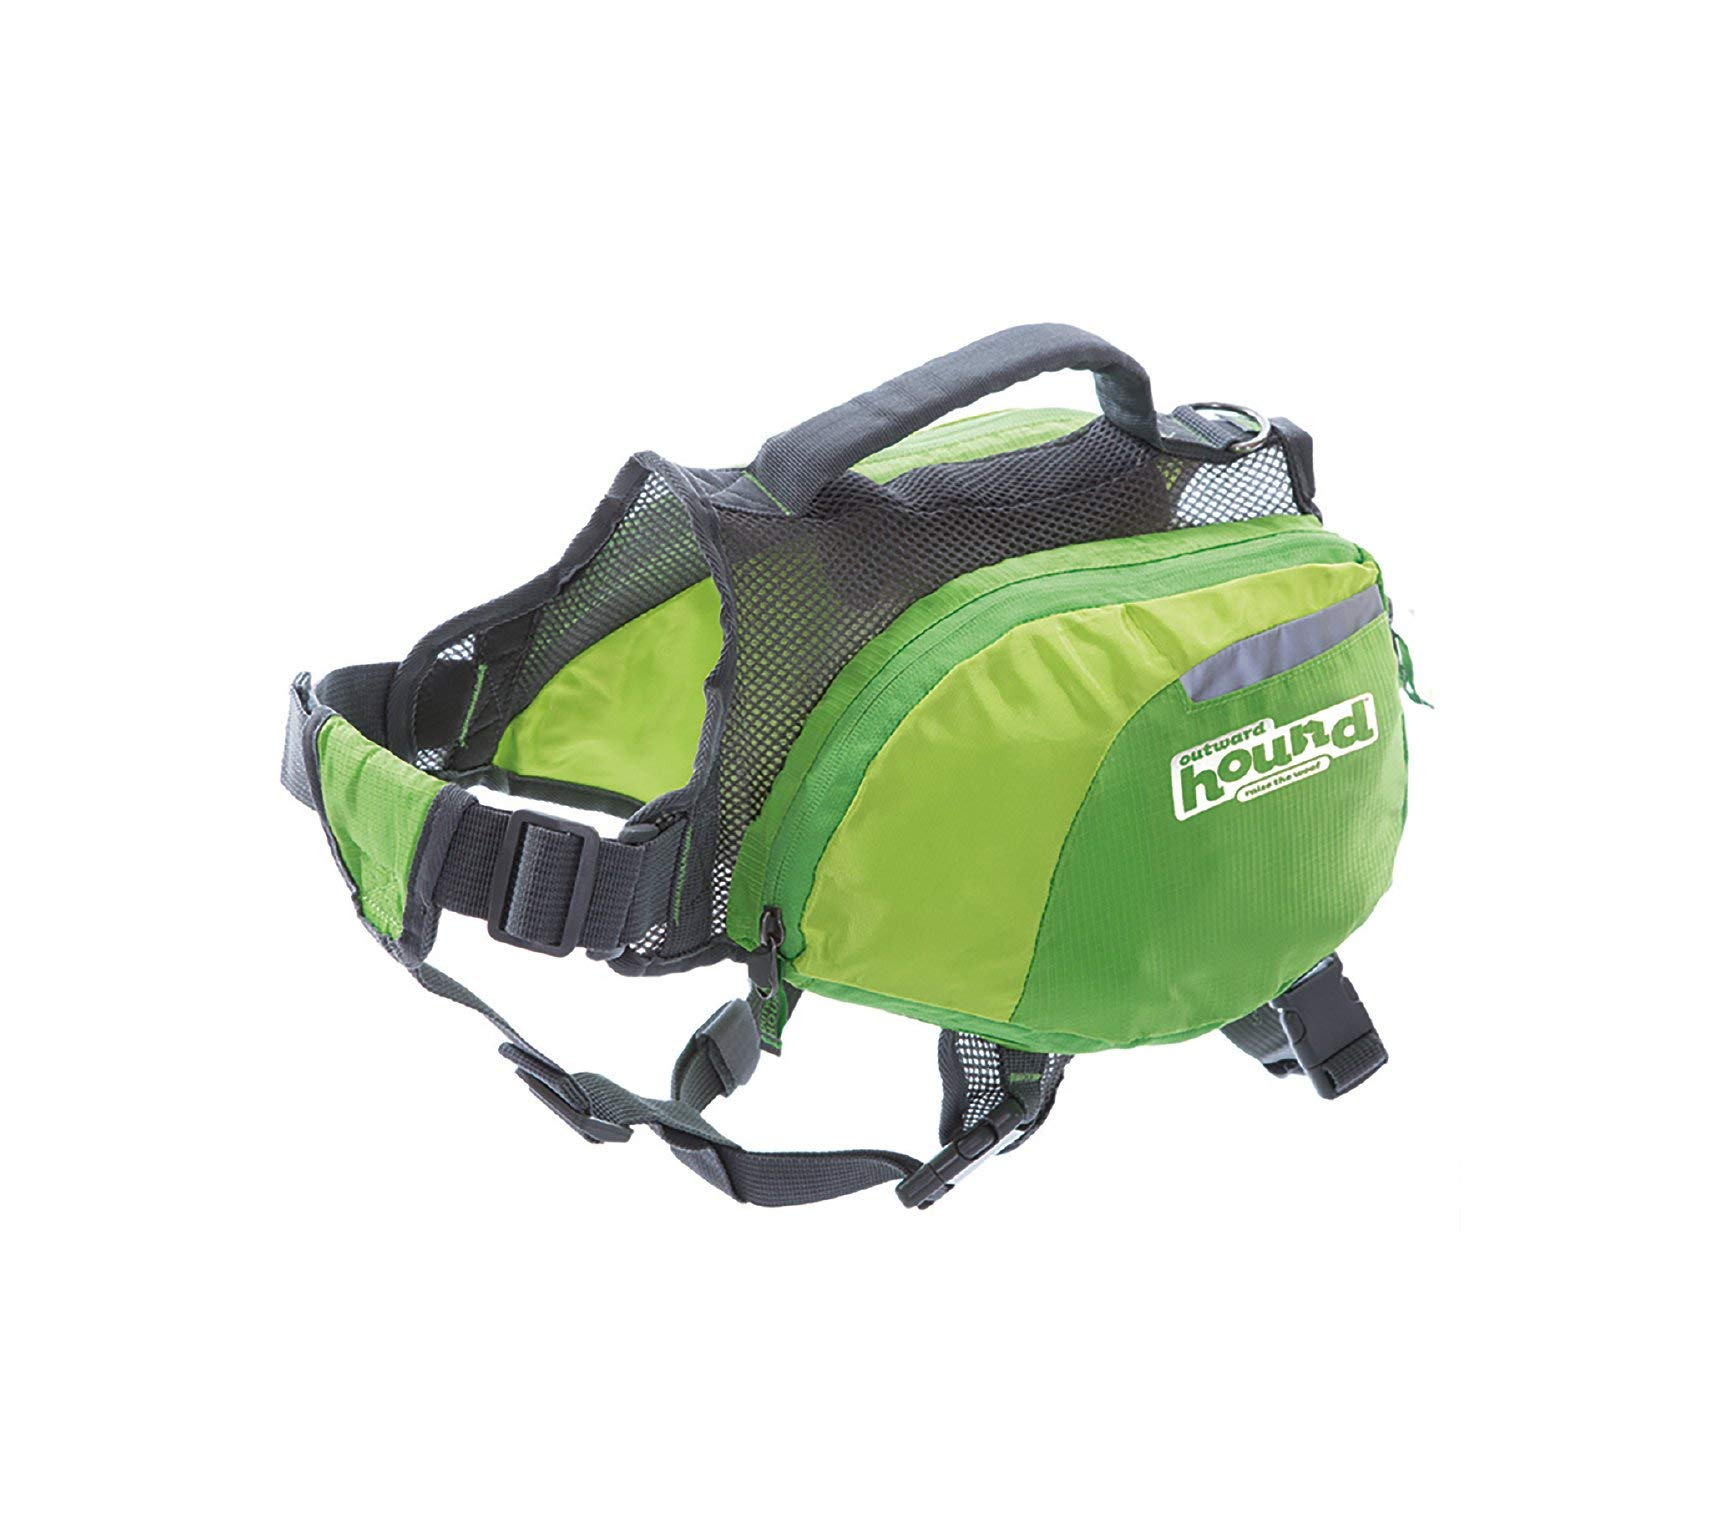 Daypak Dog Backpack Hiking Gear For Dogs by Outward Hound, Small, Green by Outward Hound